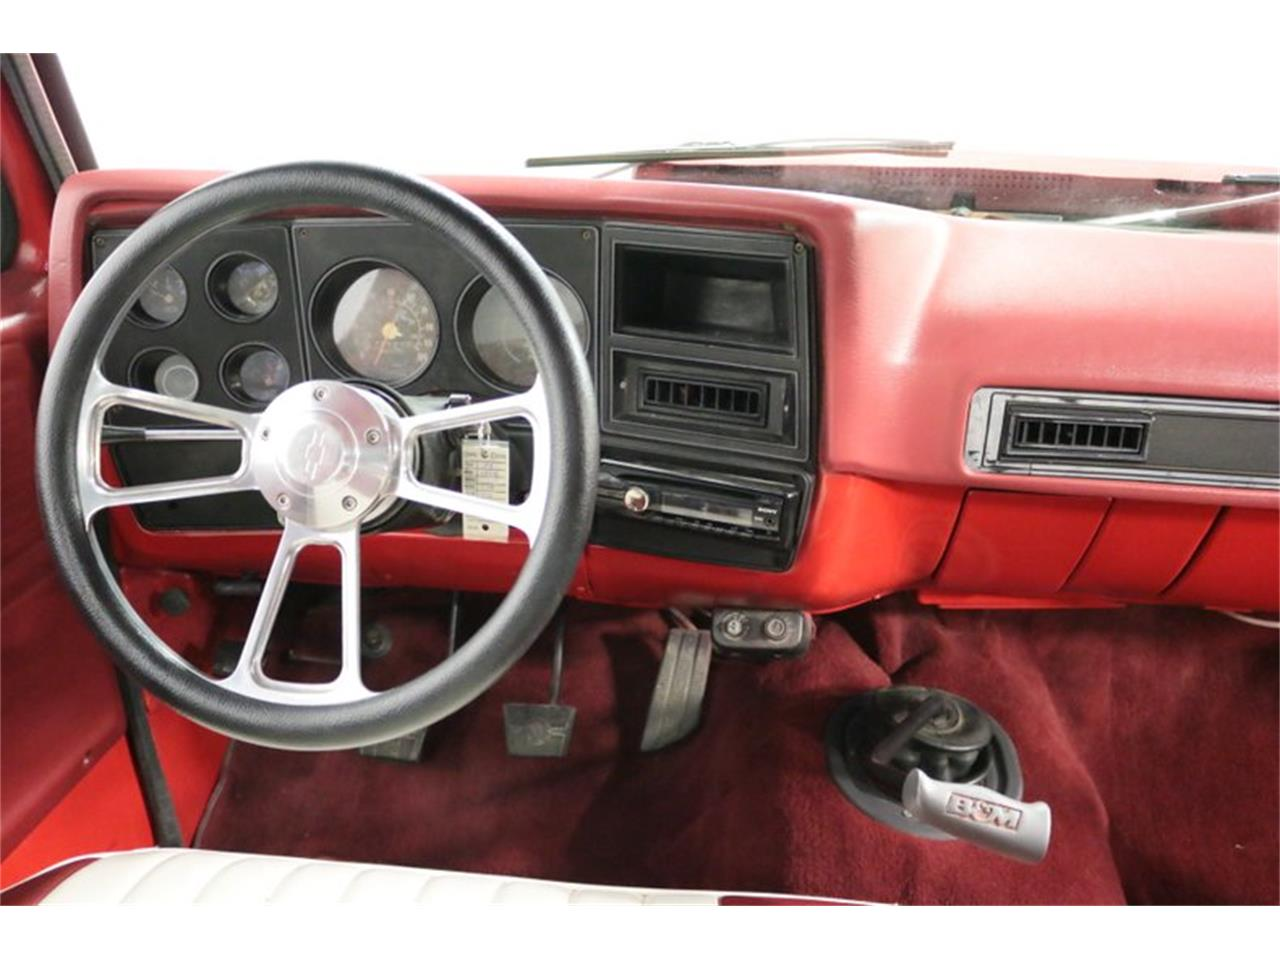 Large Picture of 1979 C10 located in Texas - $22,995.00 Offered by Streetside Classics - Dallas / Fort Worth - QAW7